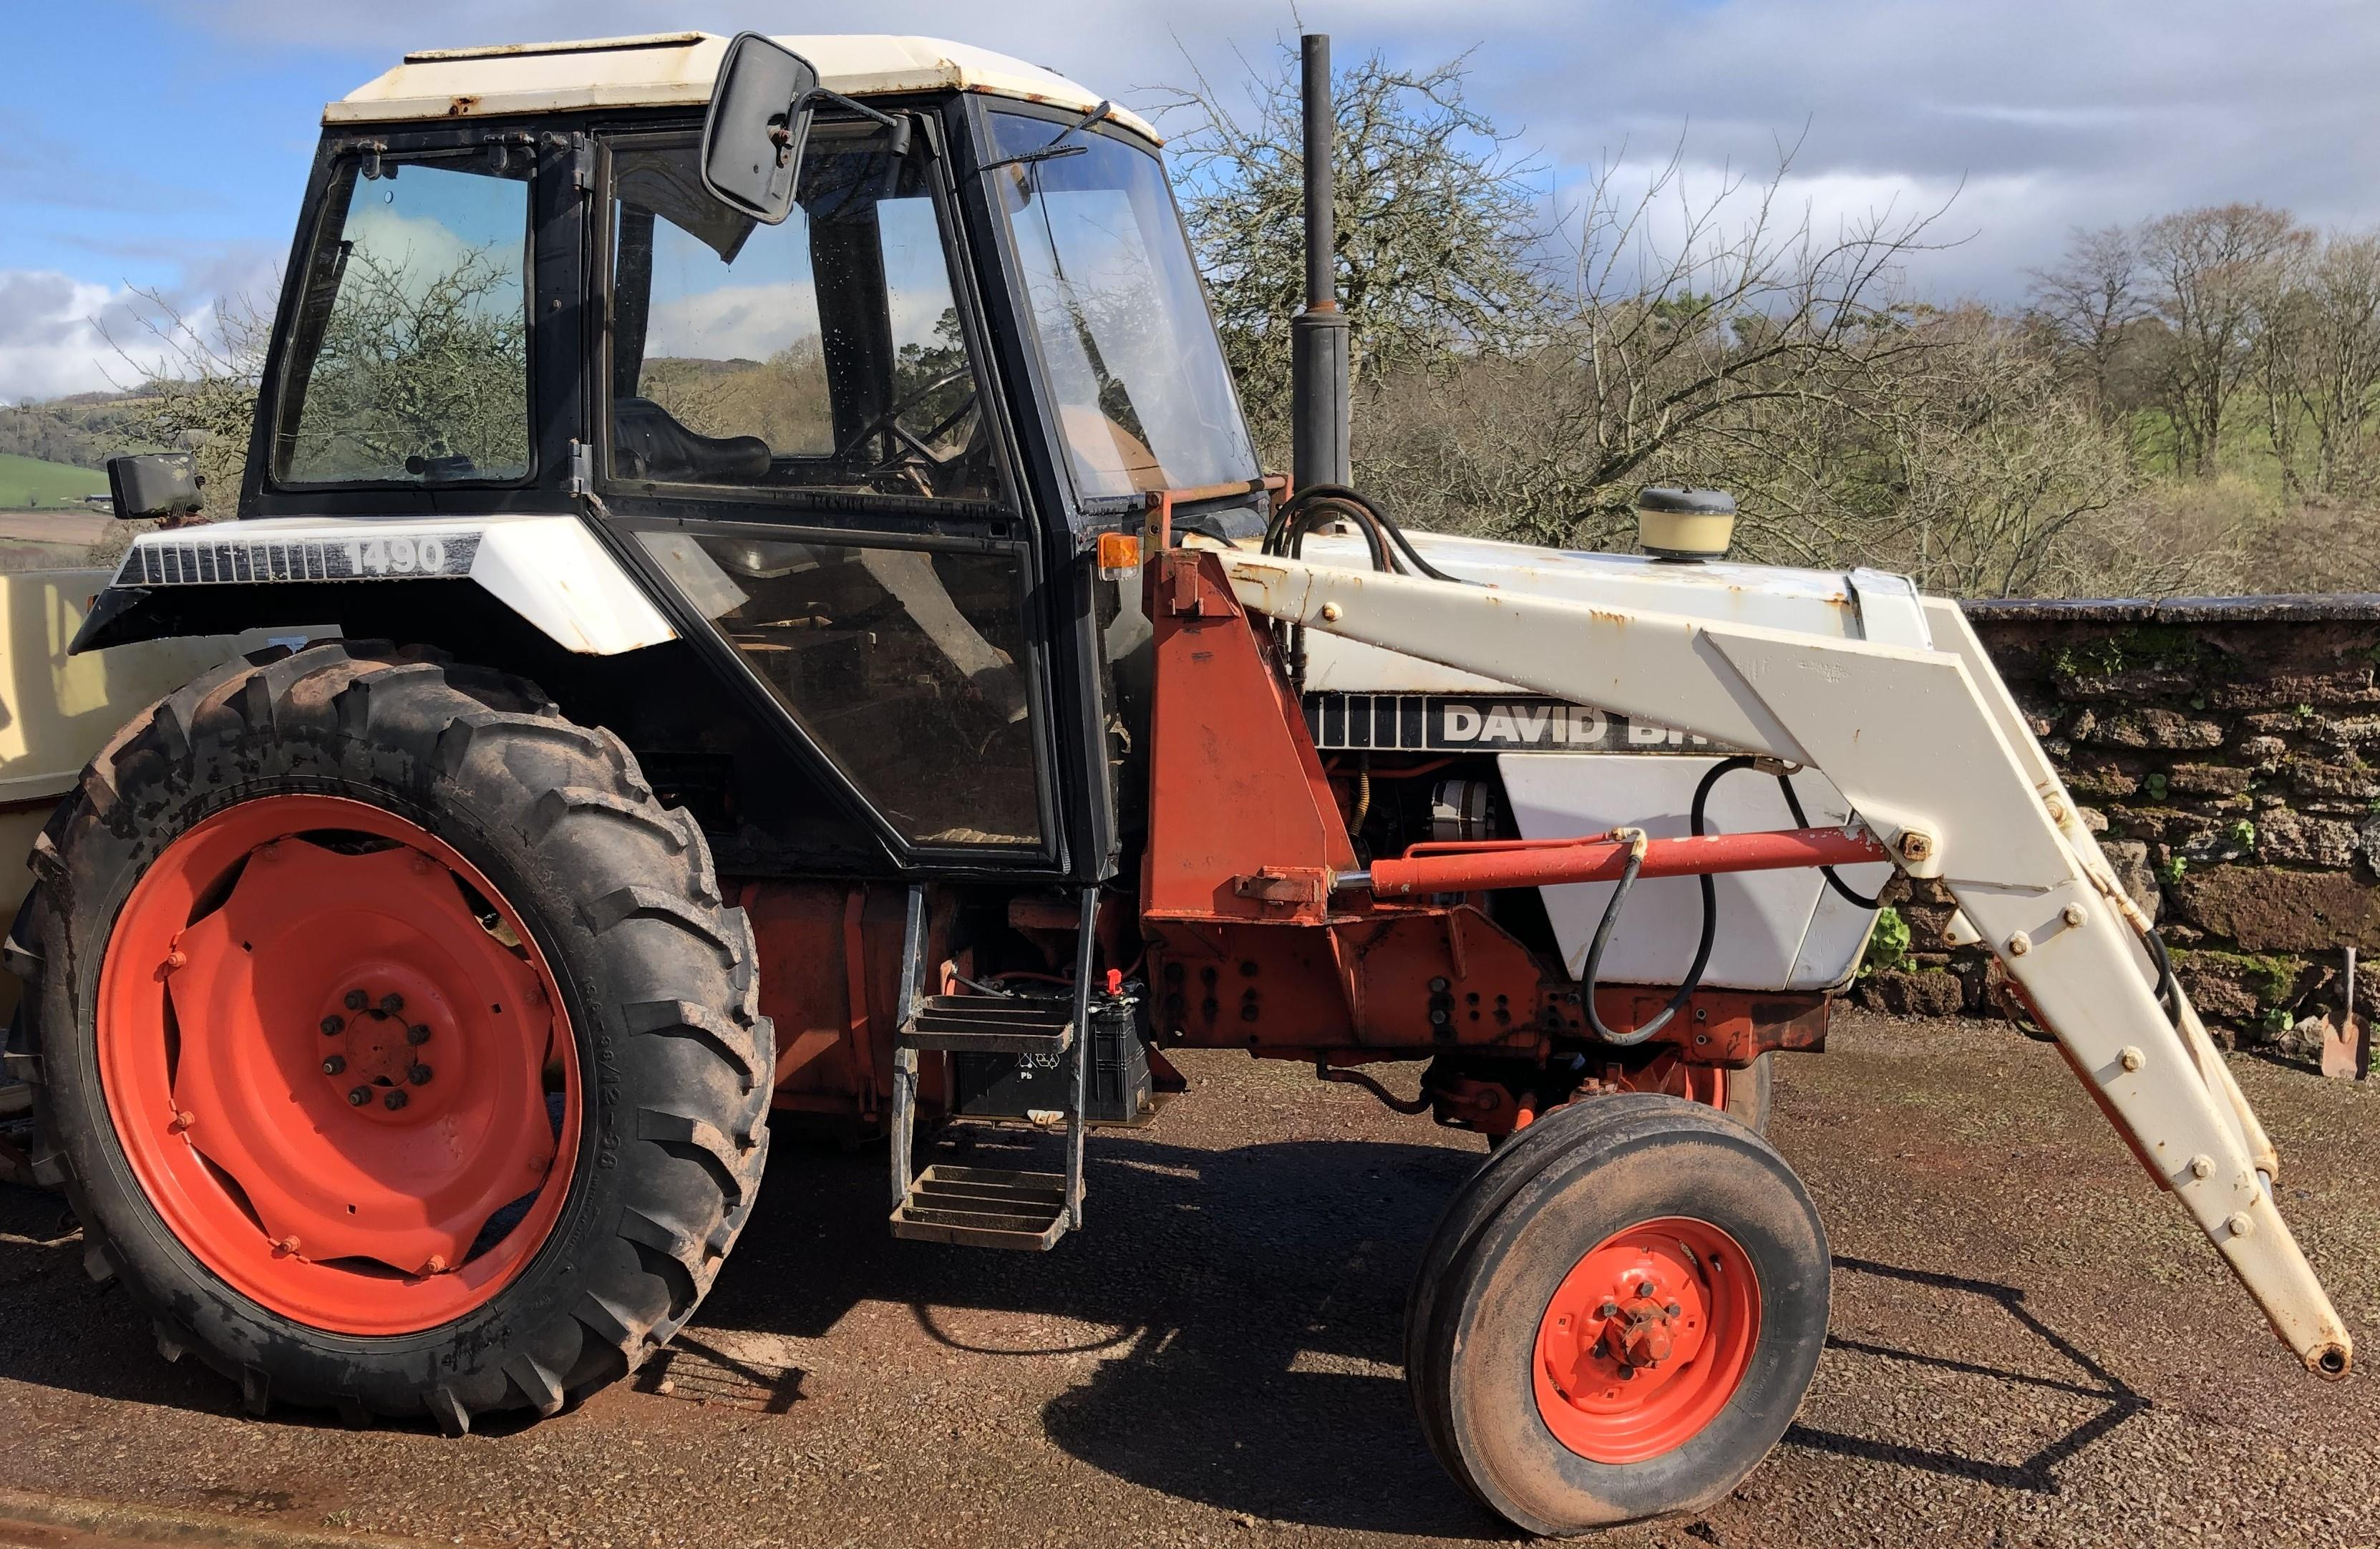 South Devon Collective Machinery Sale on Saturday 28th March